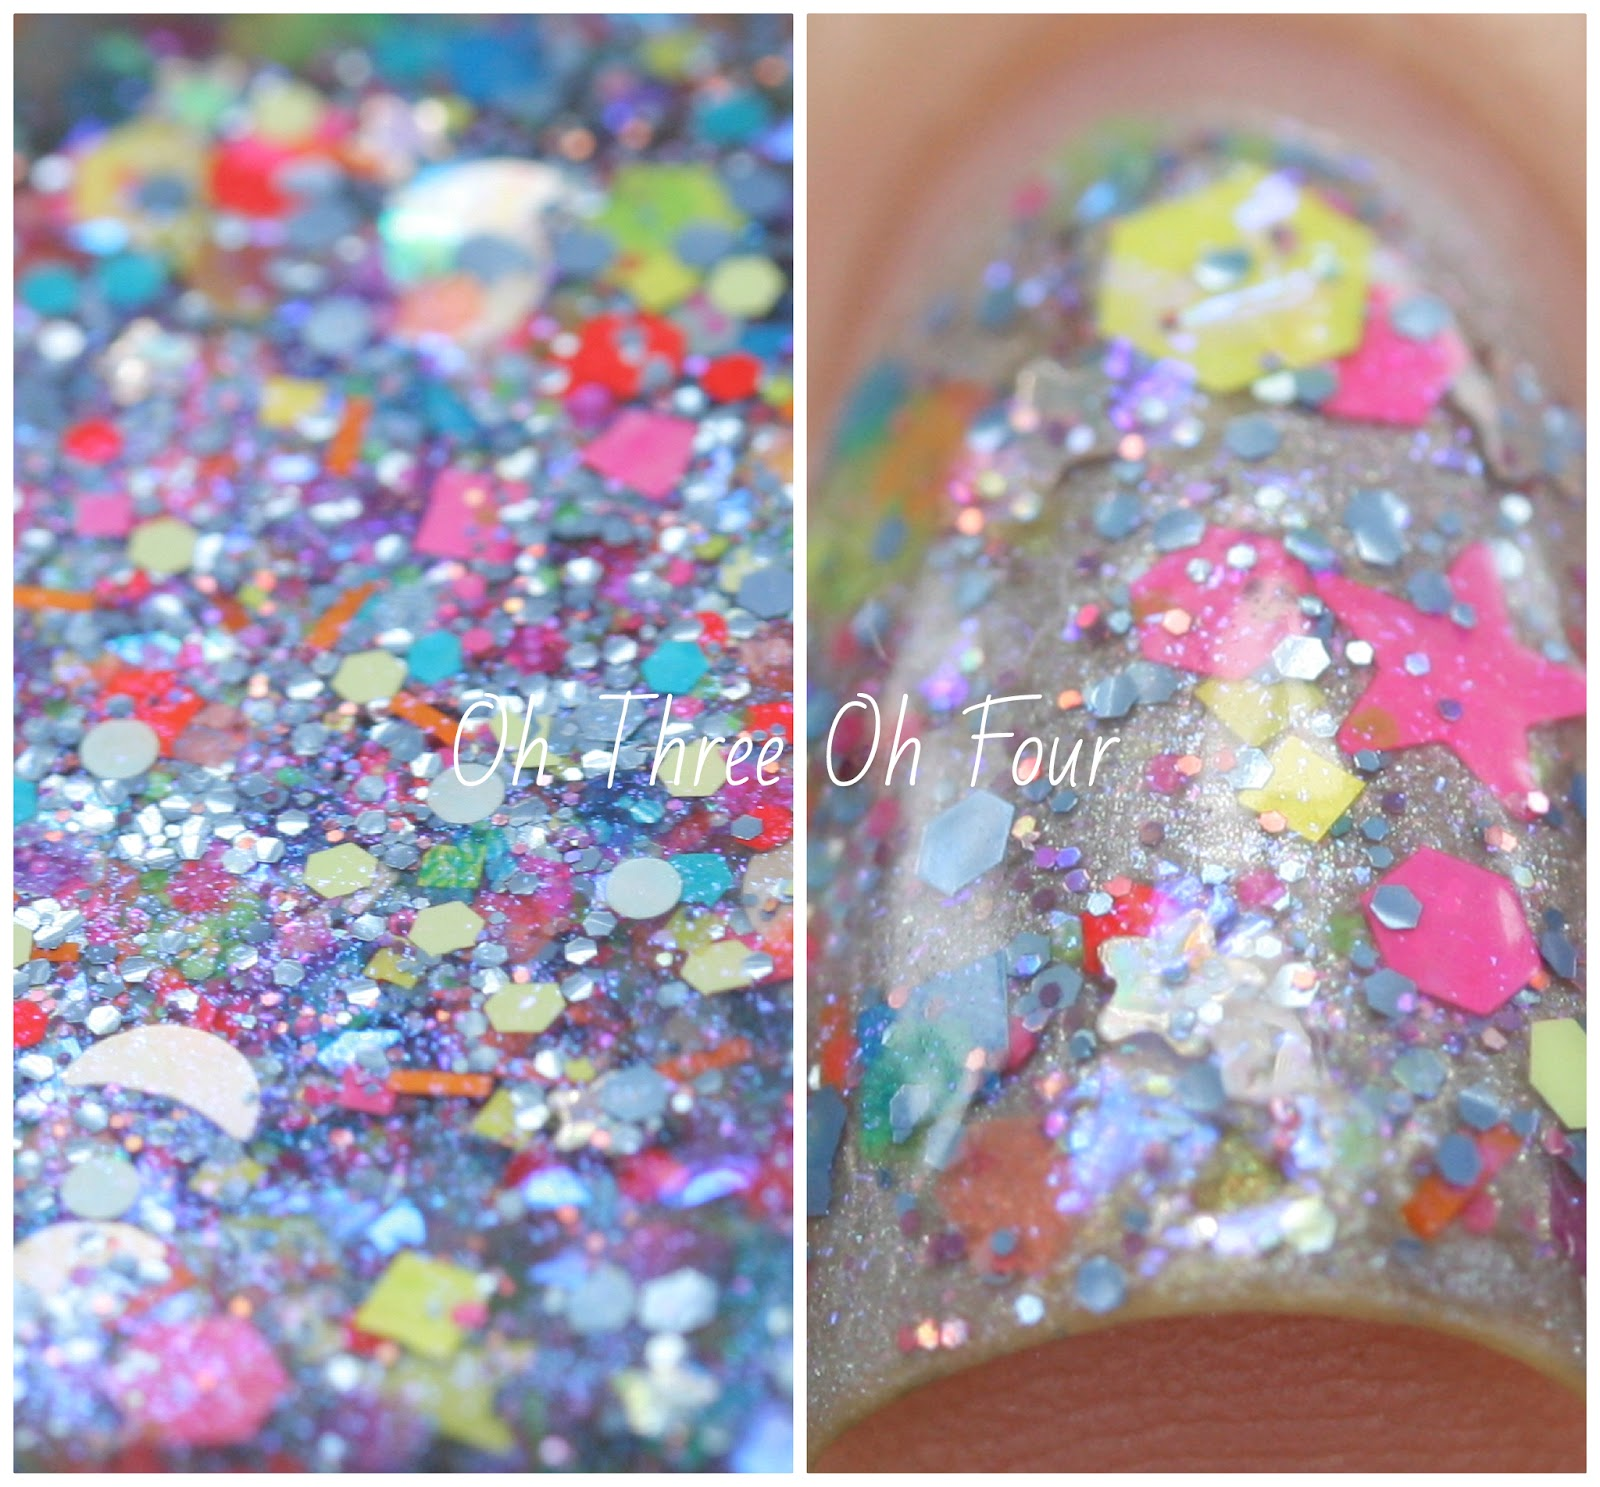 Lynnderella Once in a Blue Unicorn swatch